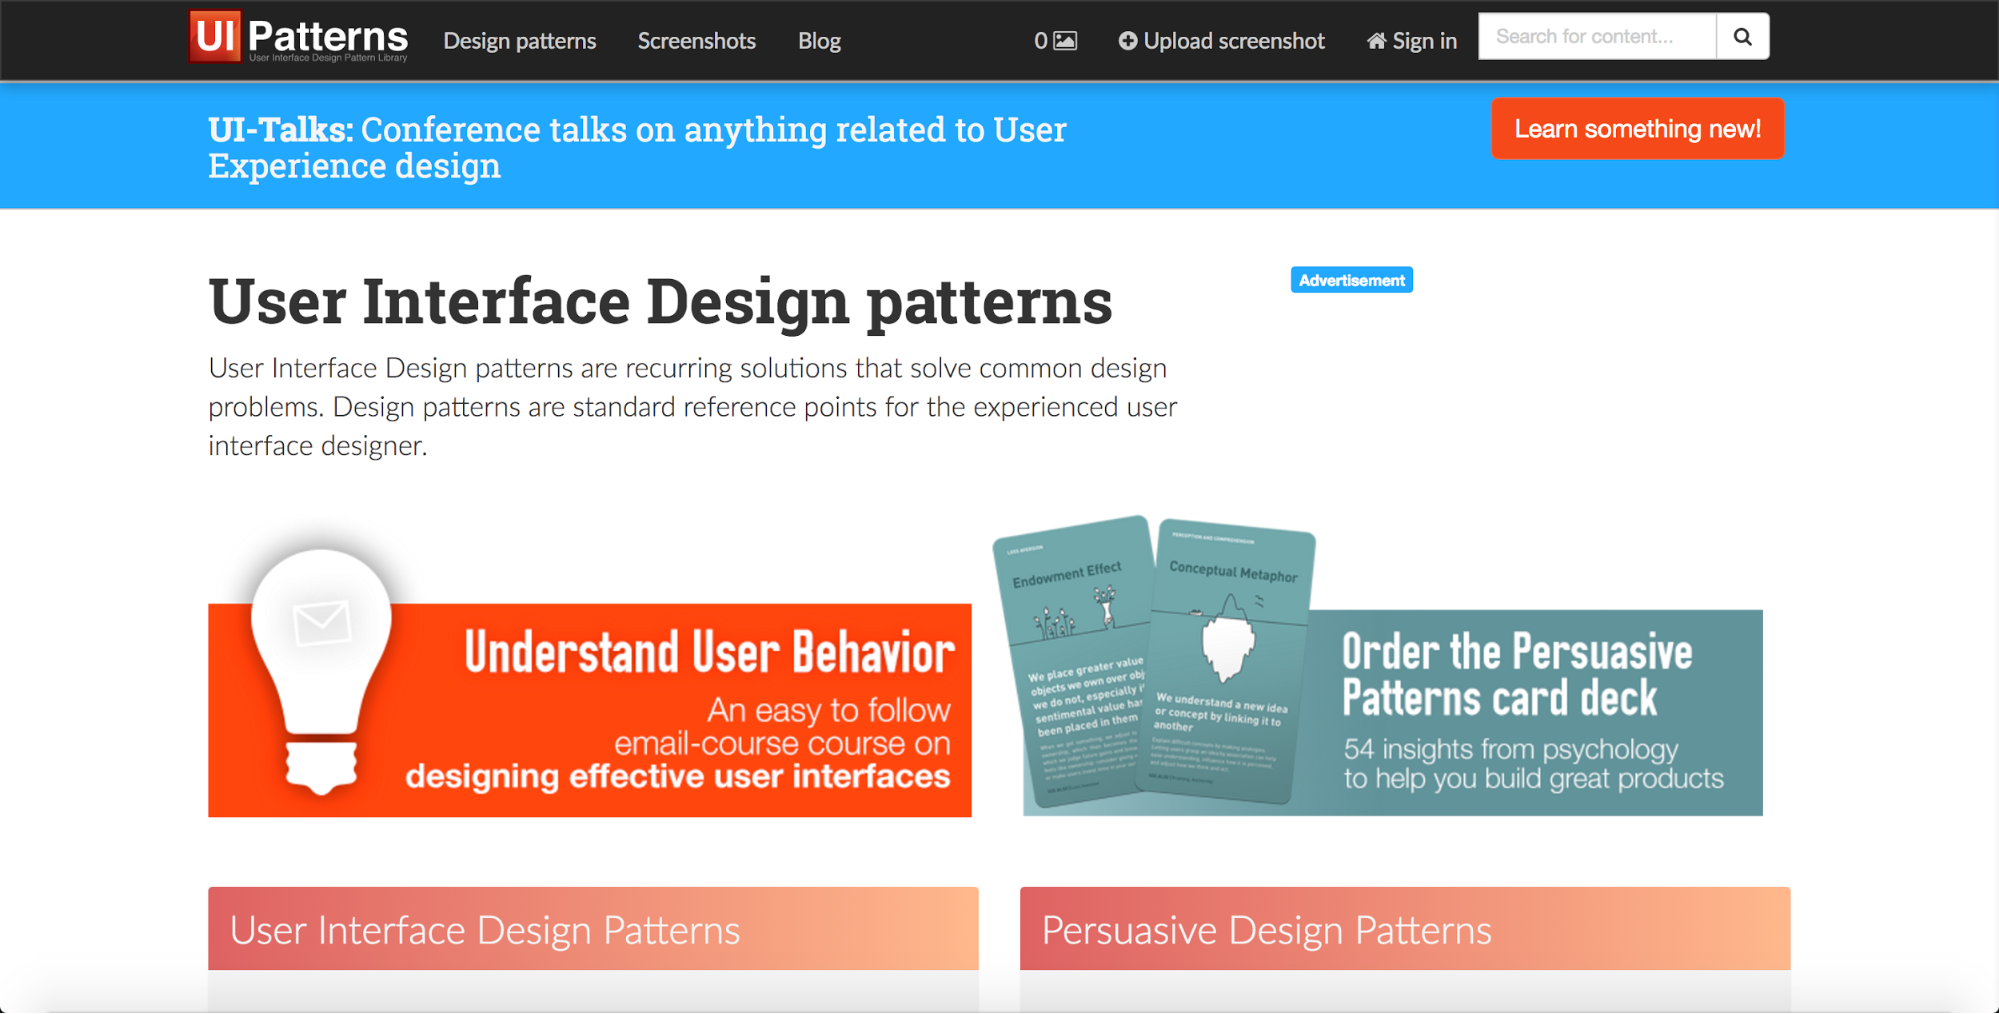 UI Patterns inspiraton and education website